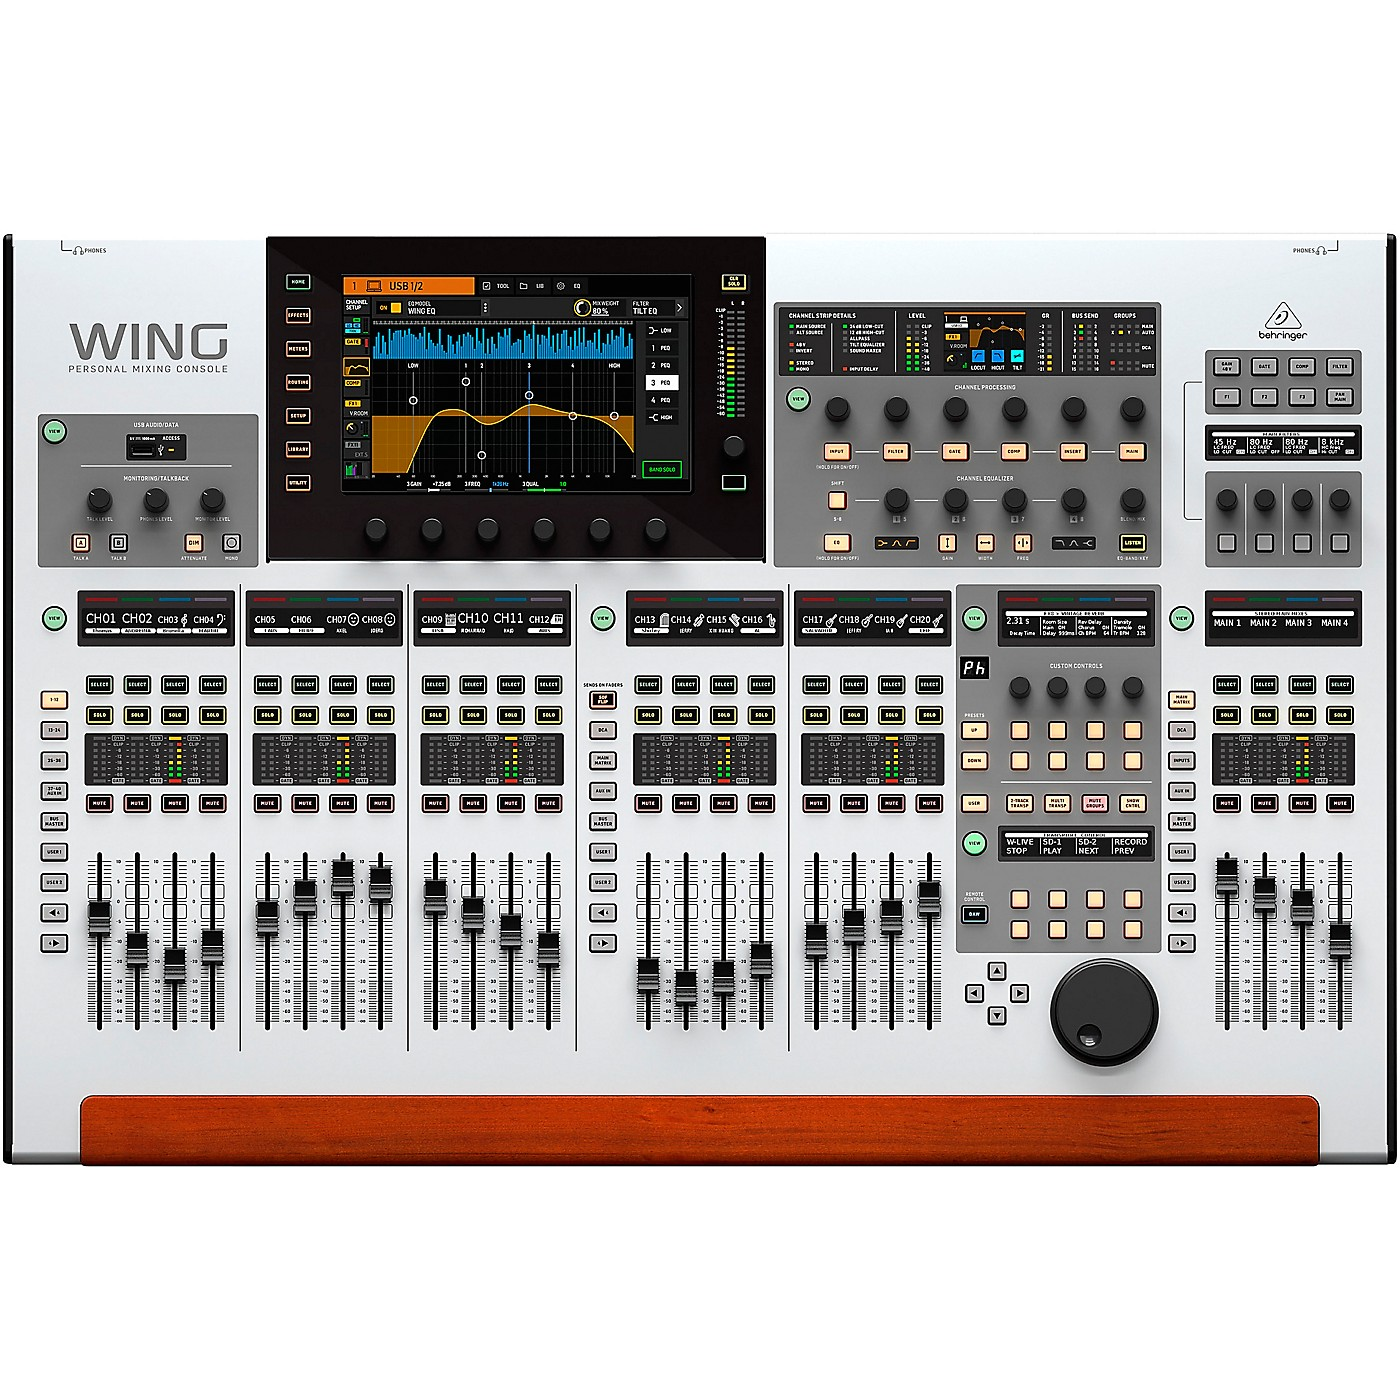 Behringer WING 48-Channel Digital Mixer with 24-Fader Control Surface and 10